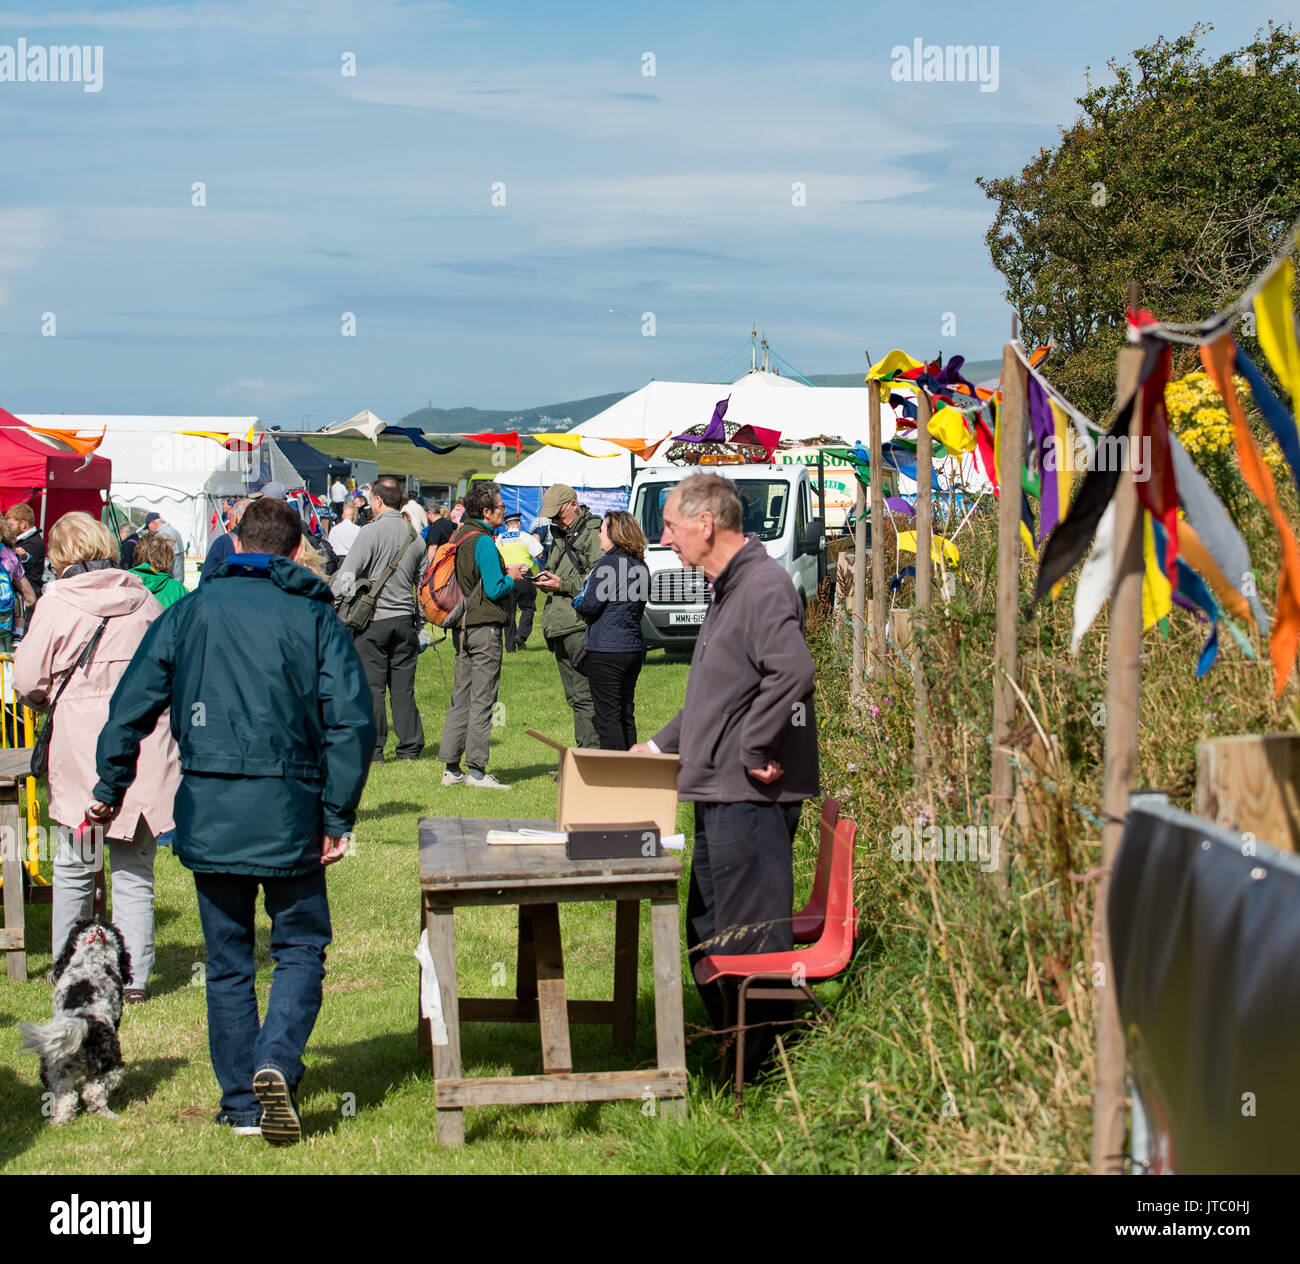 Entrance to Southern agricultural show, ticket sales - Stock Image